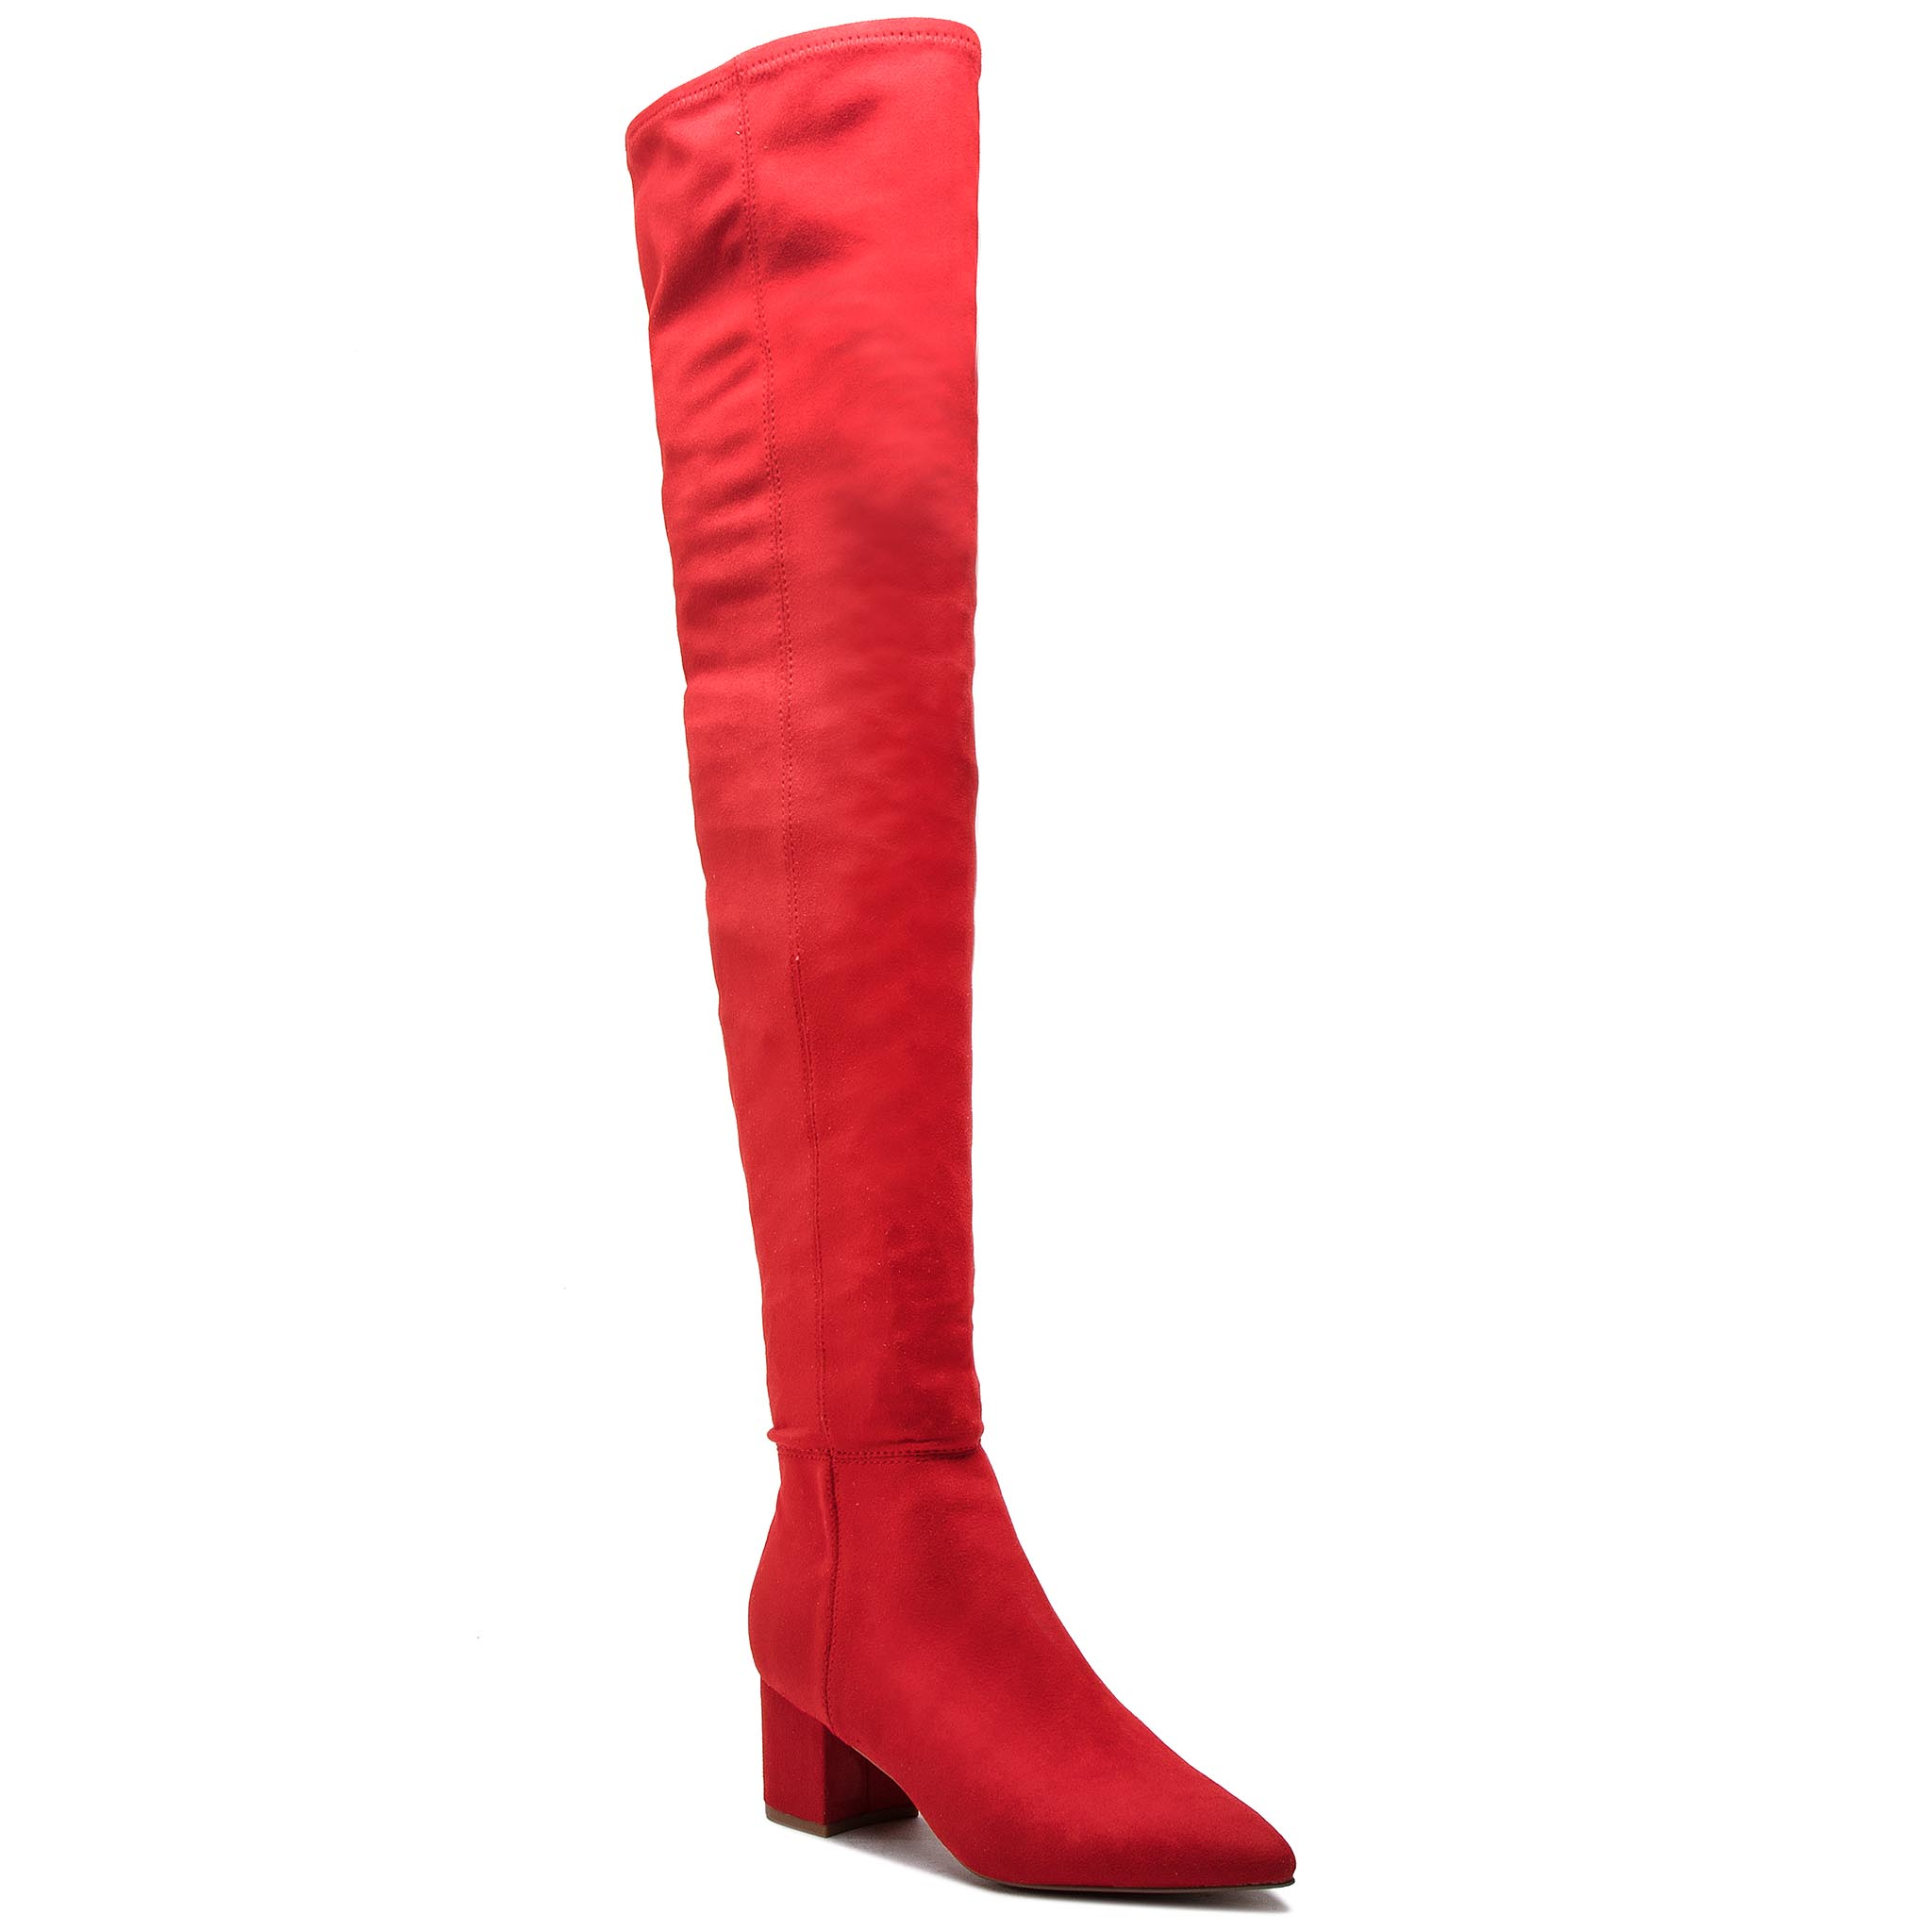 Cizme lungi muschetar STEVE MADDEN - Bolted Boot SM11000229-04001-009 Red